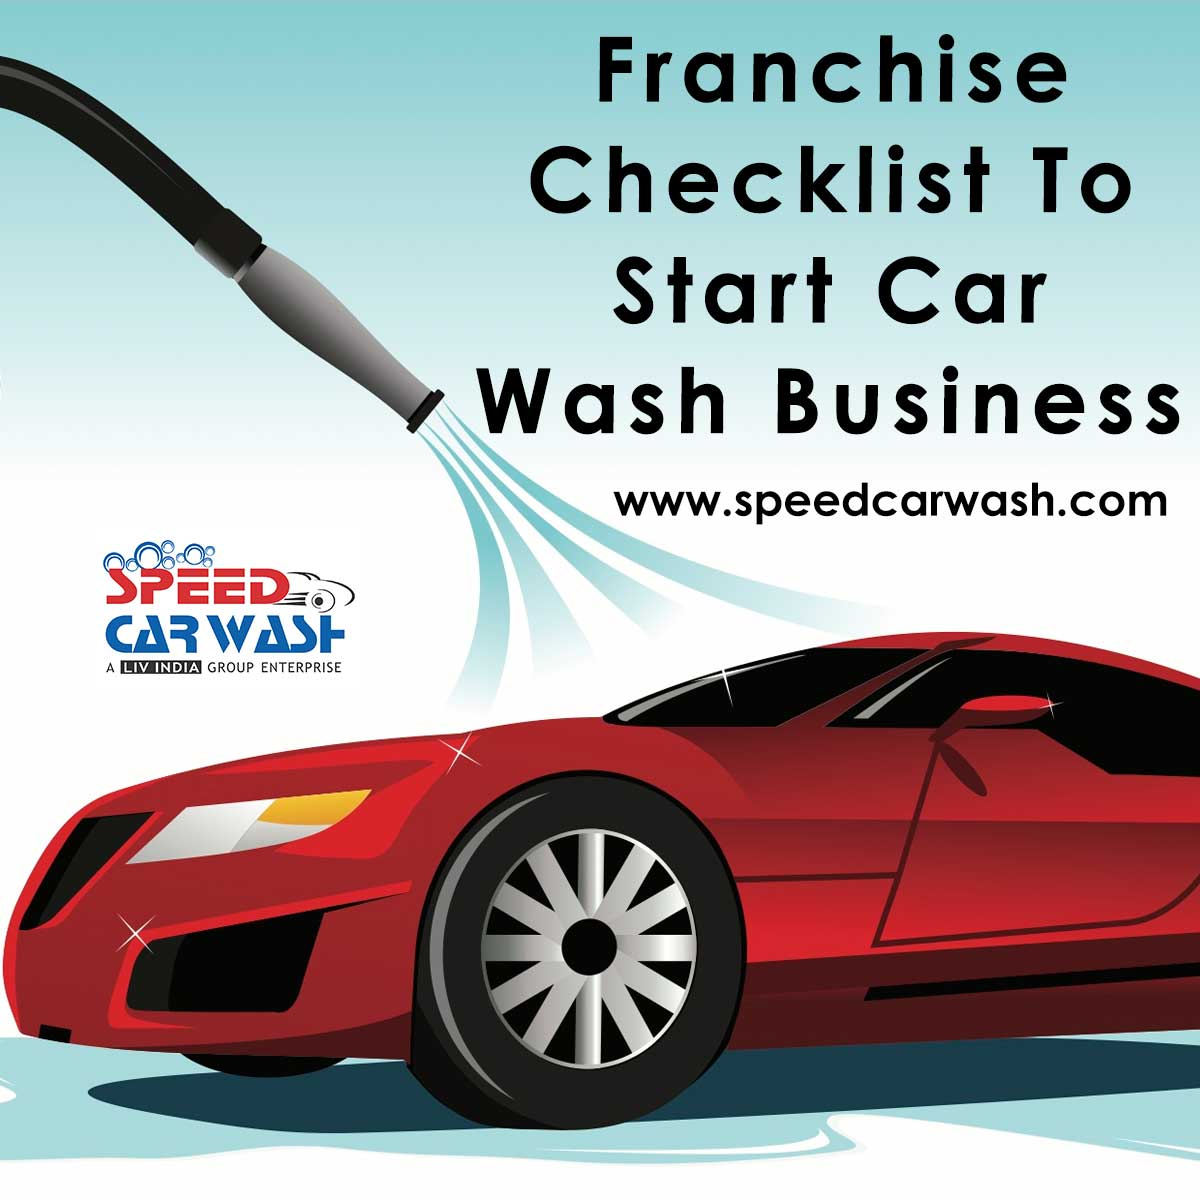 Franchise Checklist To Start Car Wash Business